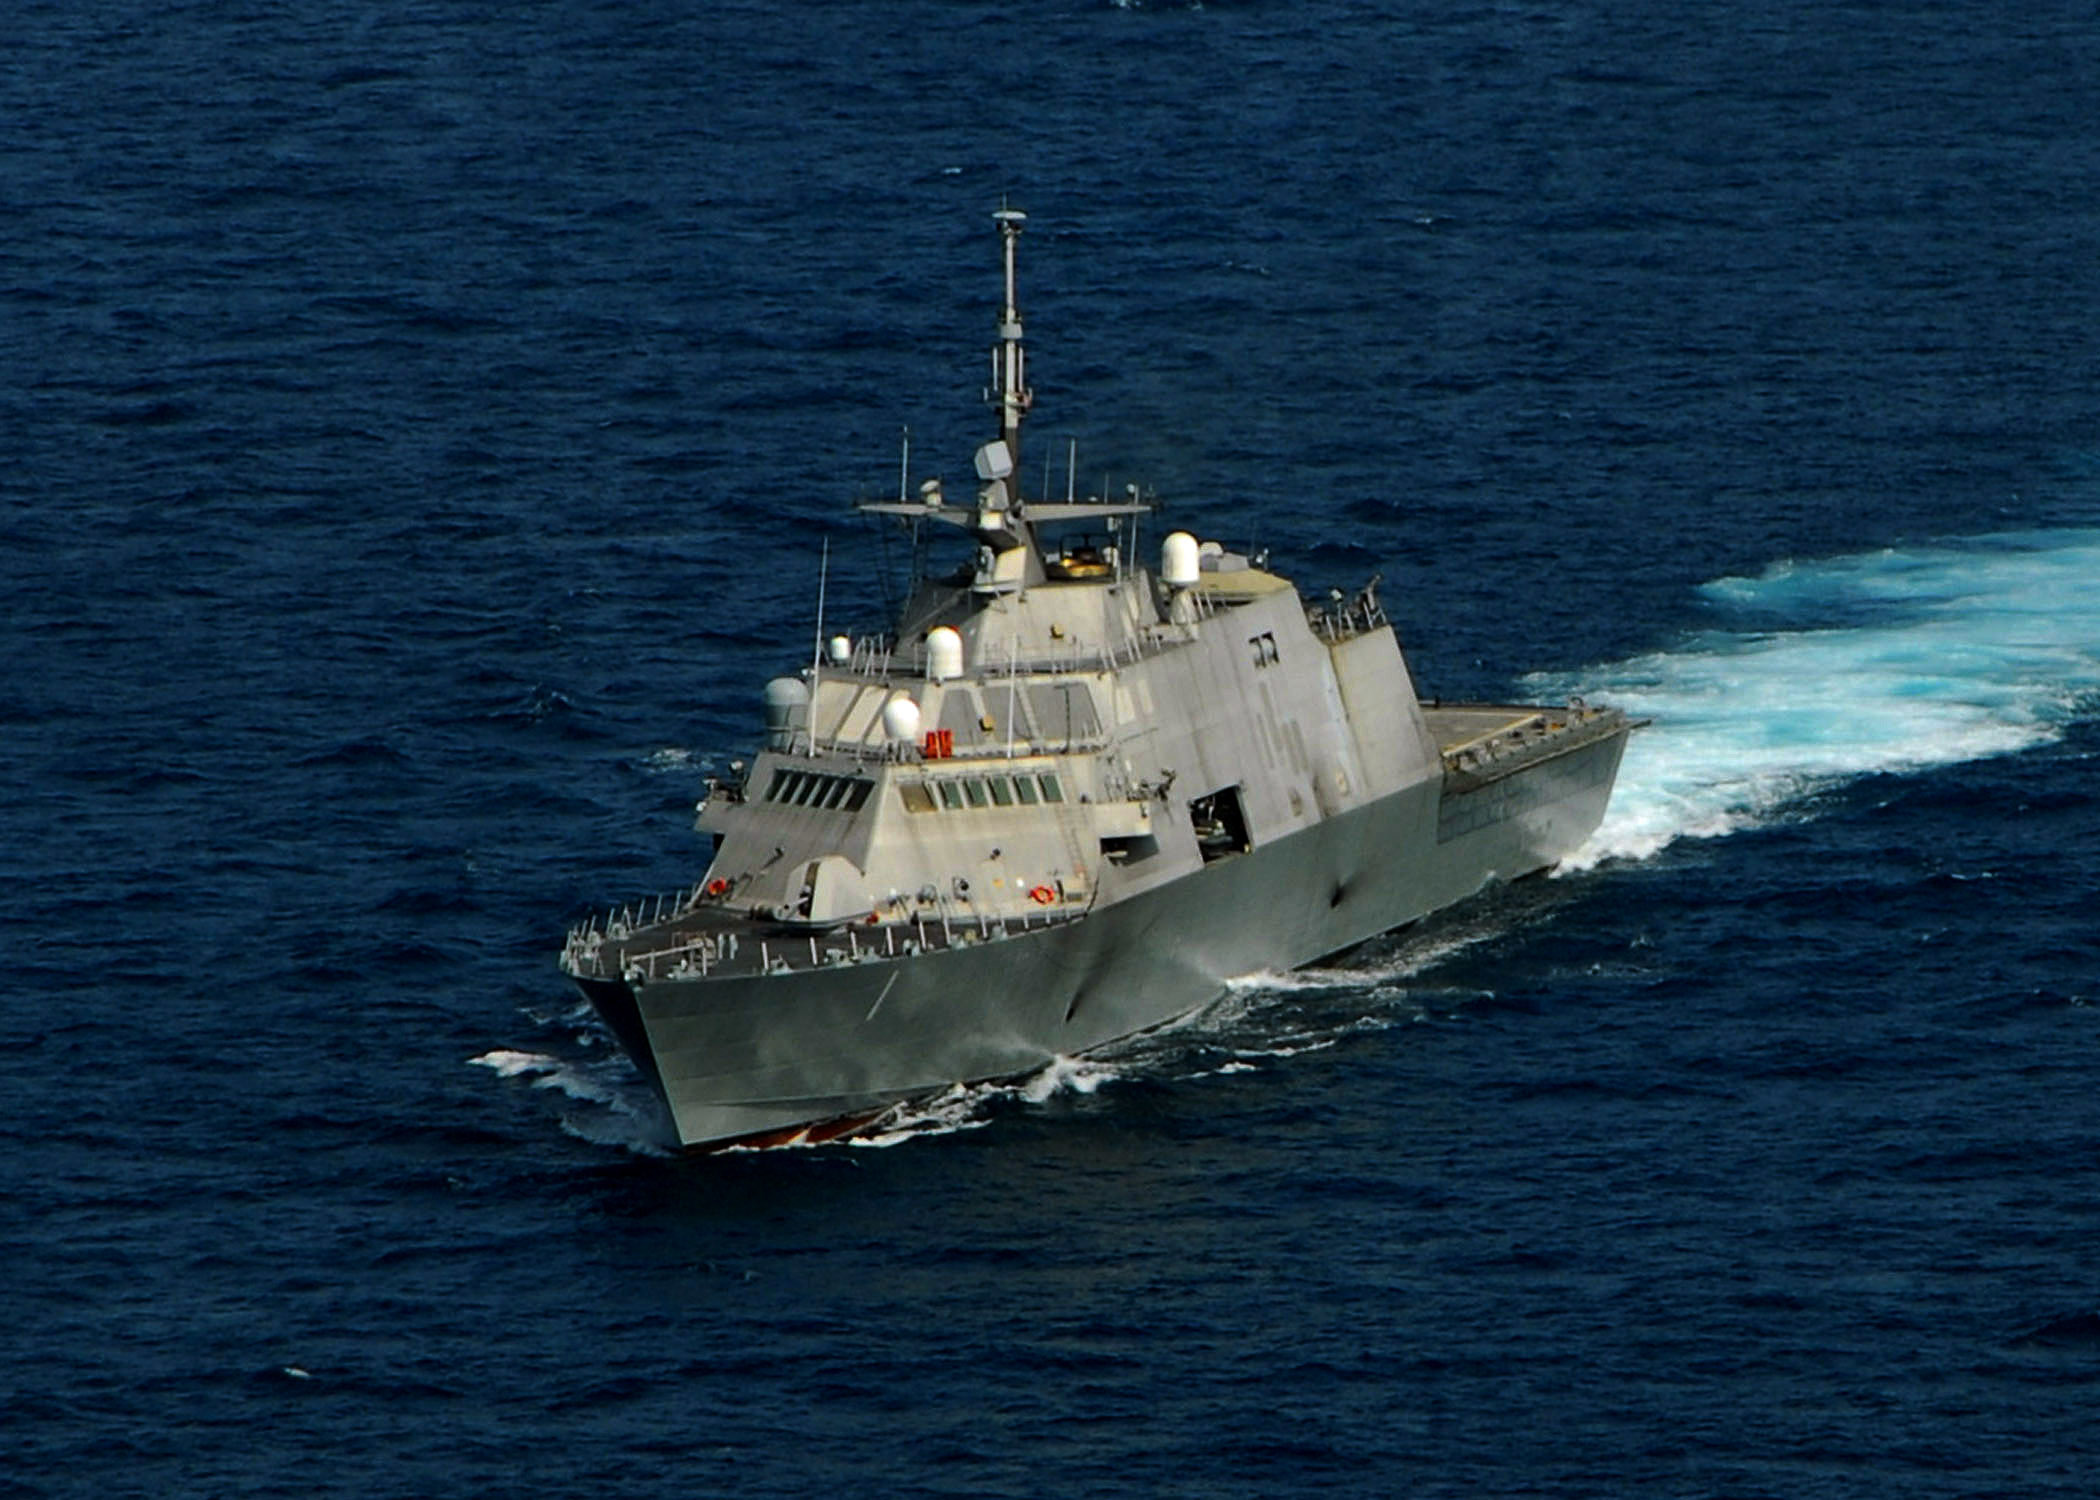 Sea ships Navy vehicles HD Wallpaper